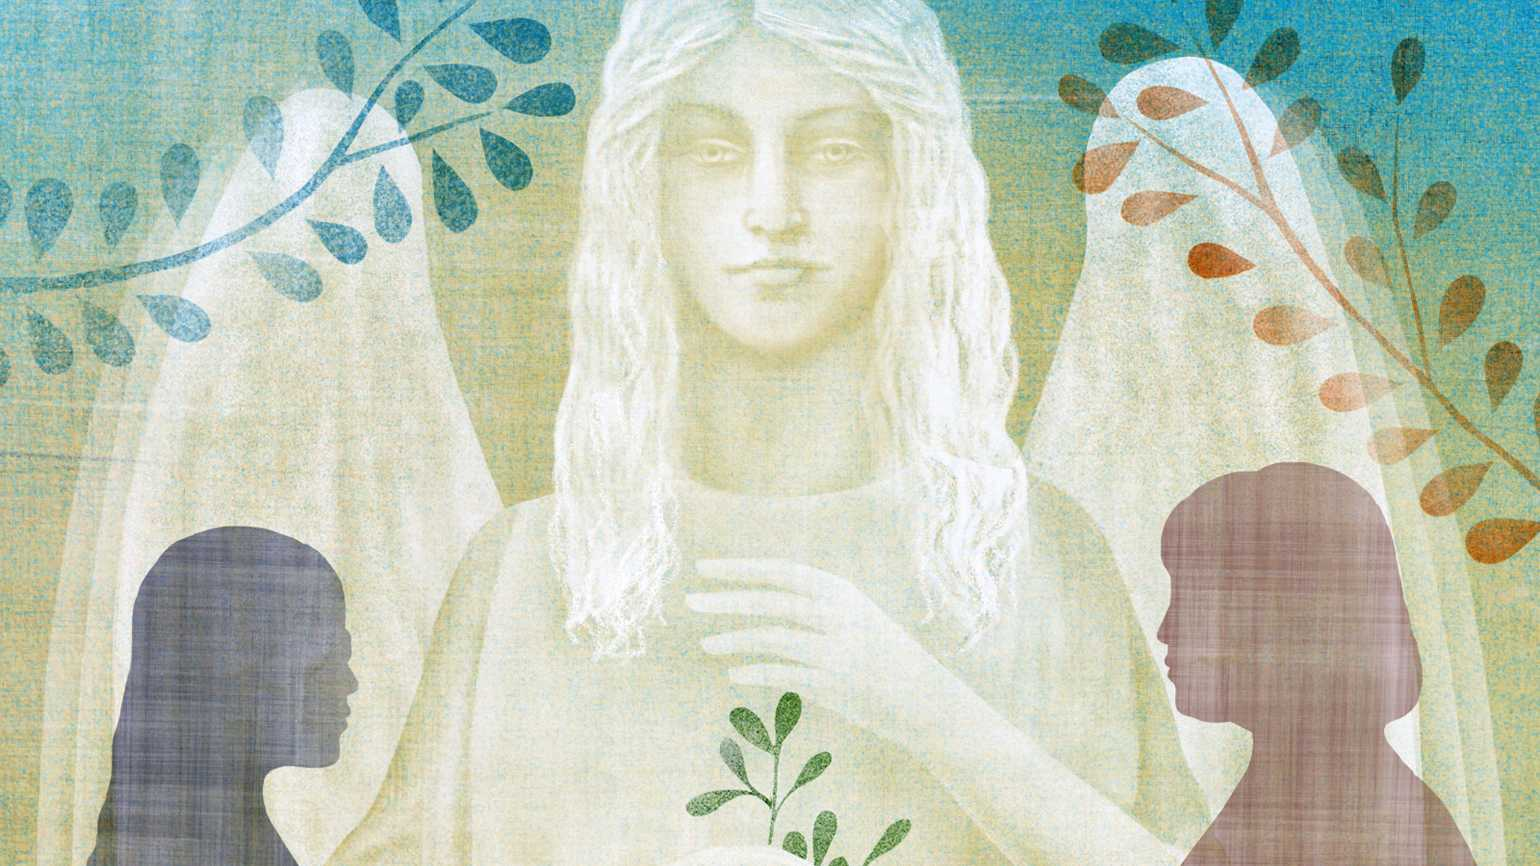 An artist's rendering two female silhouettes facing each other as an angelic figure looms in the background.